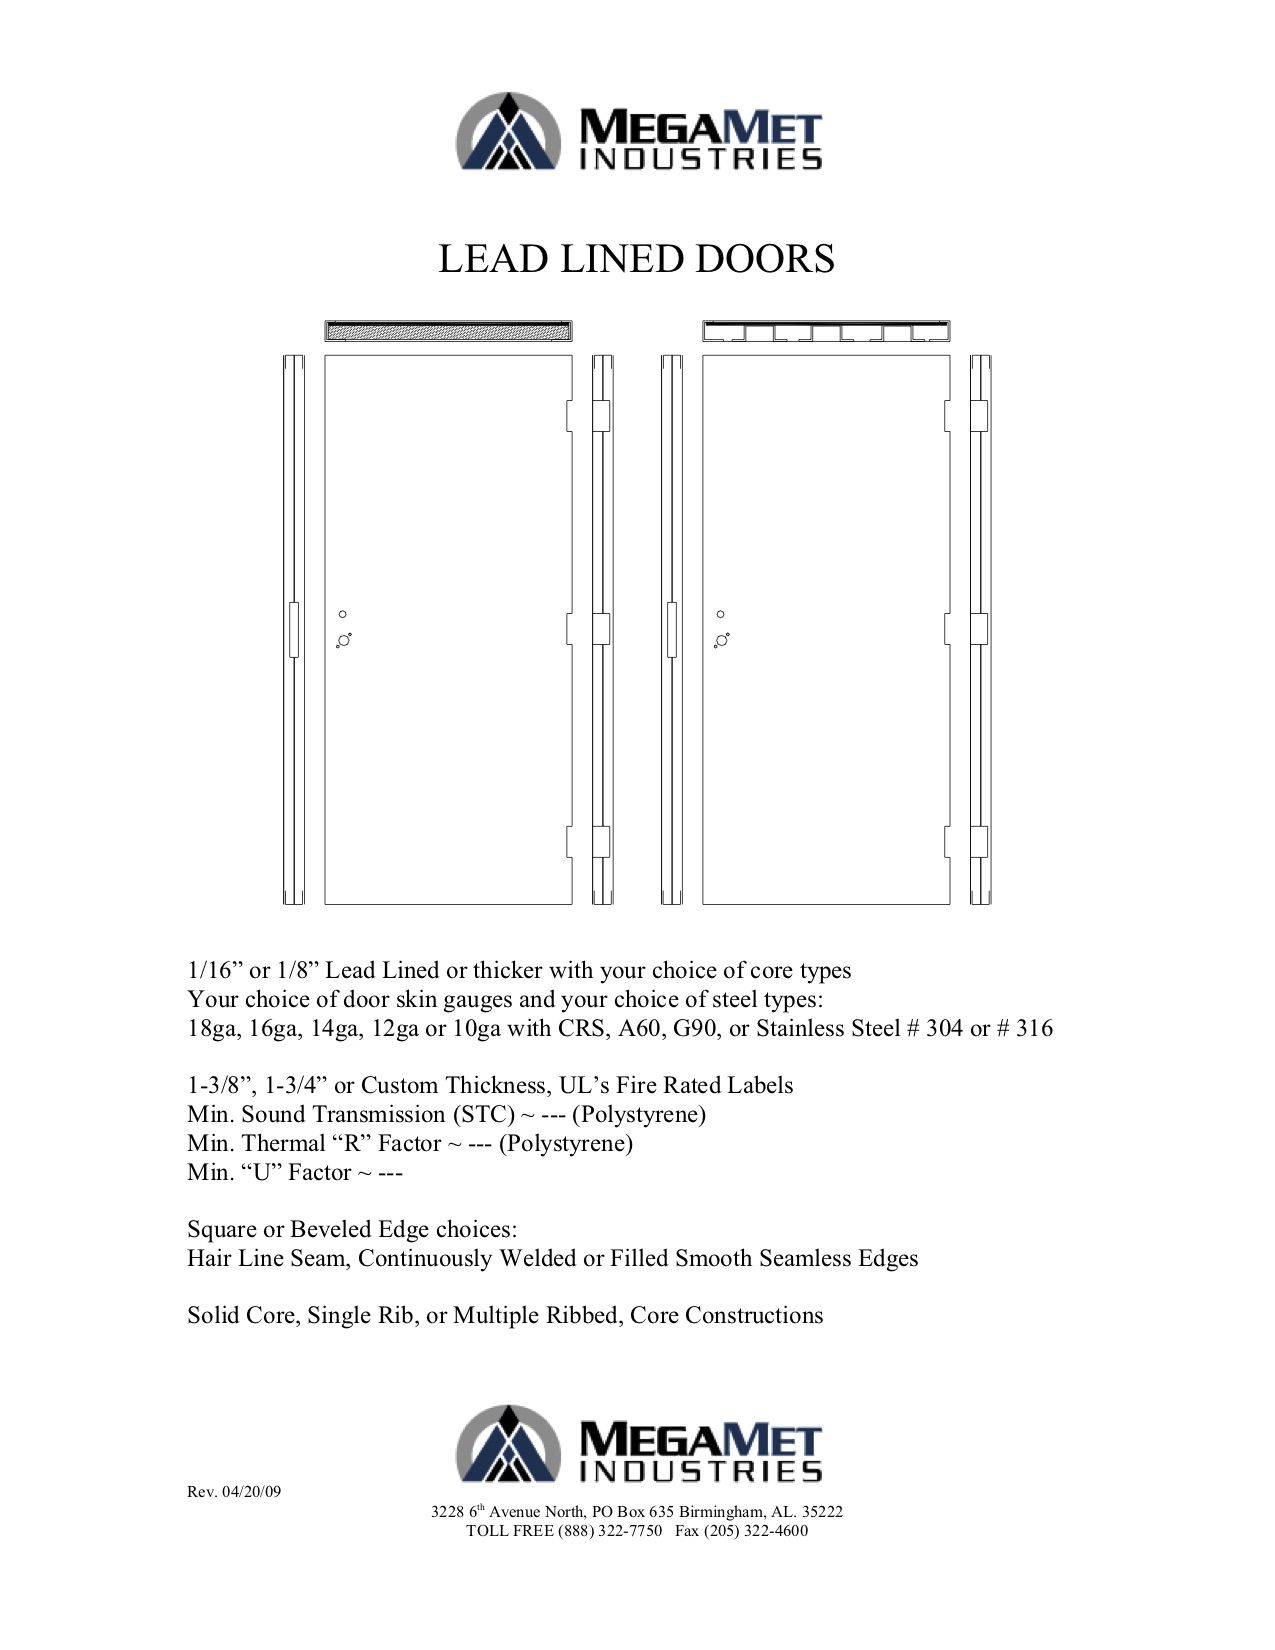 Pin By Integrity Architectural Soluti On Megamet Indistries Locker Storage Stainless Steel 304